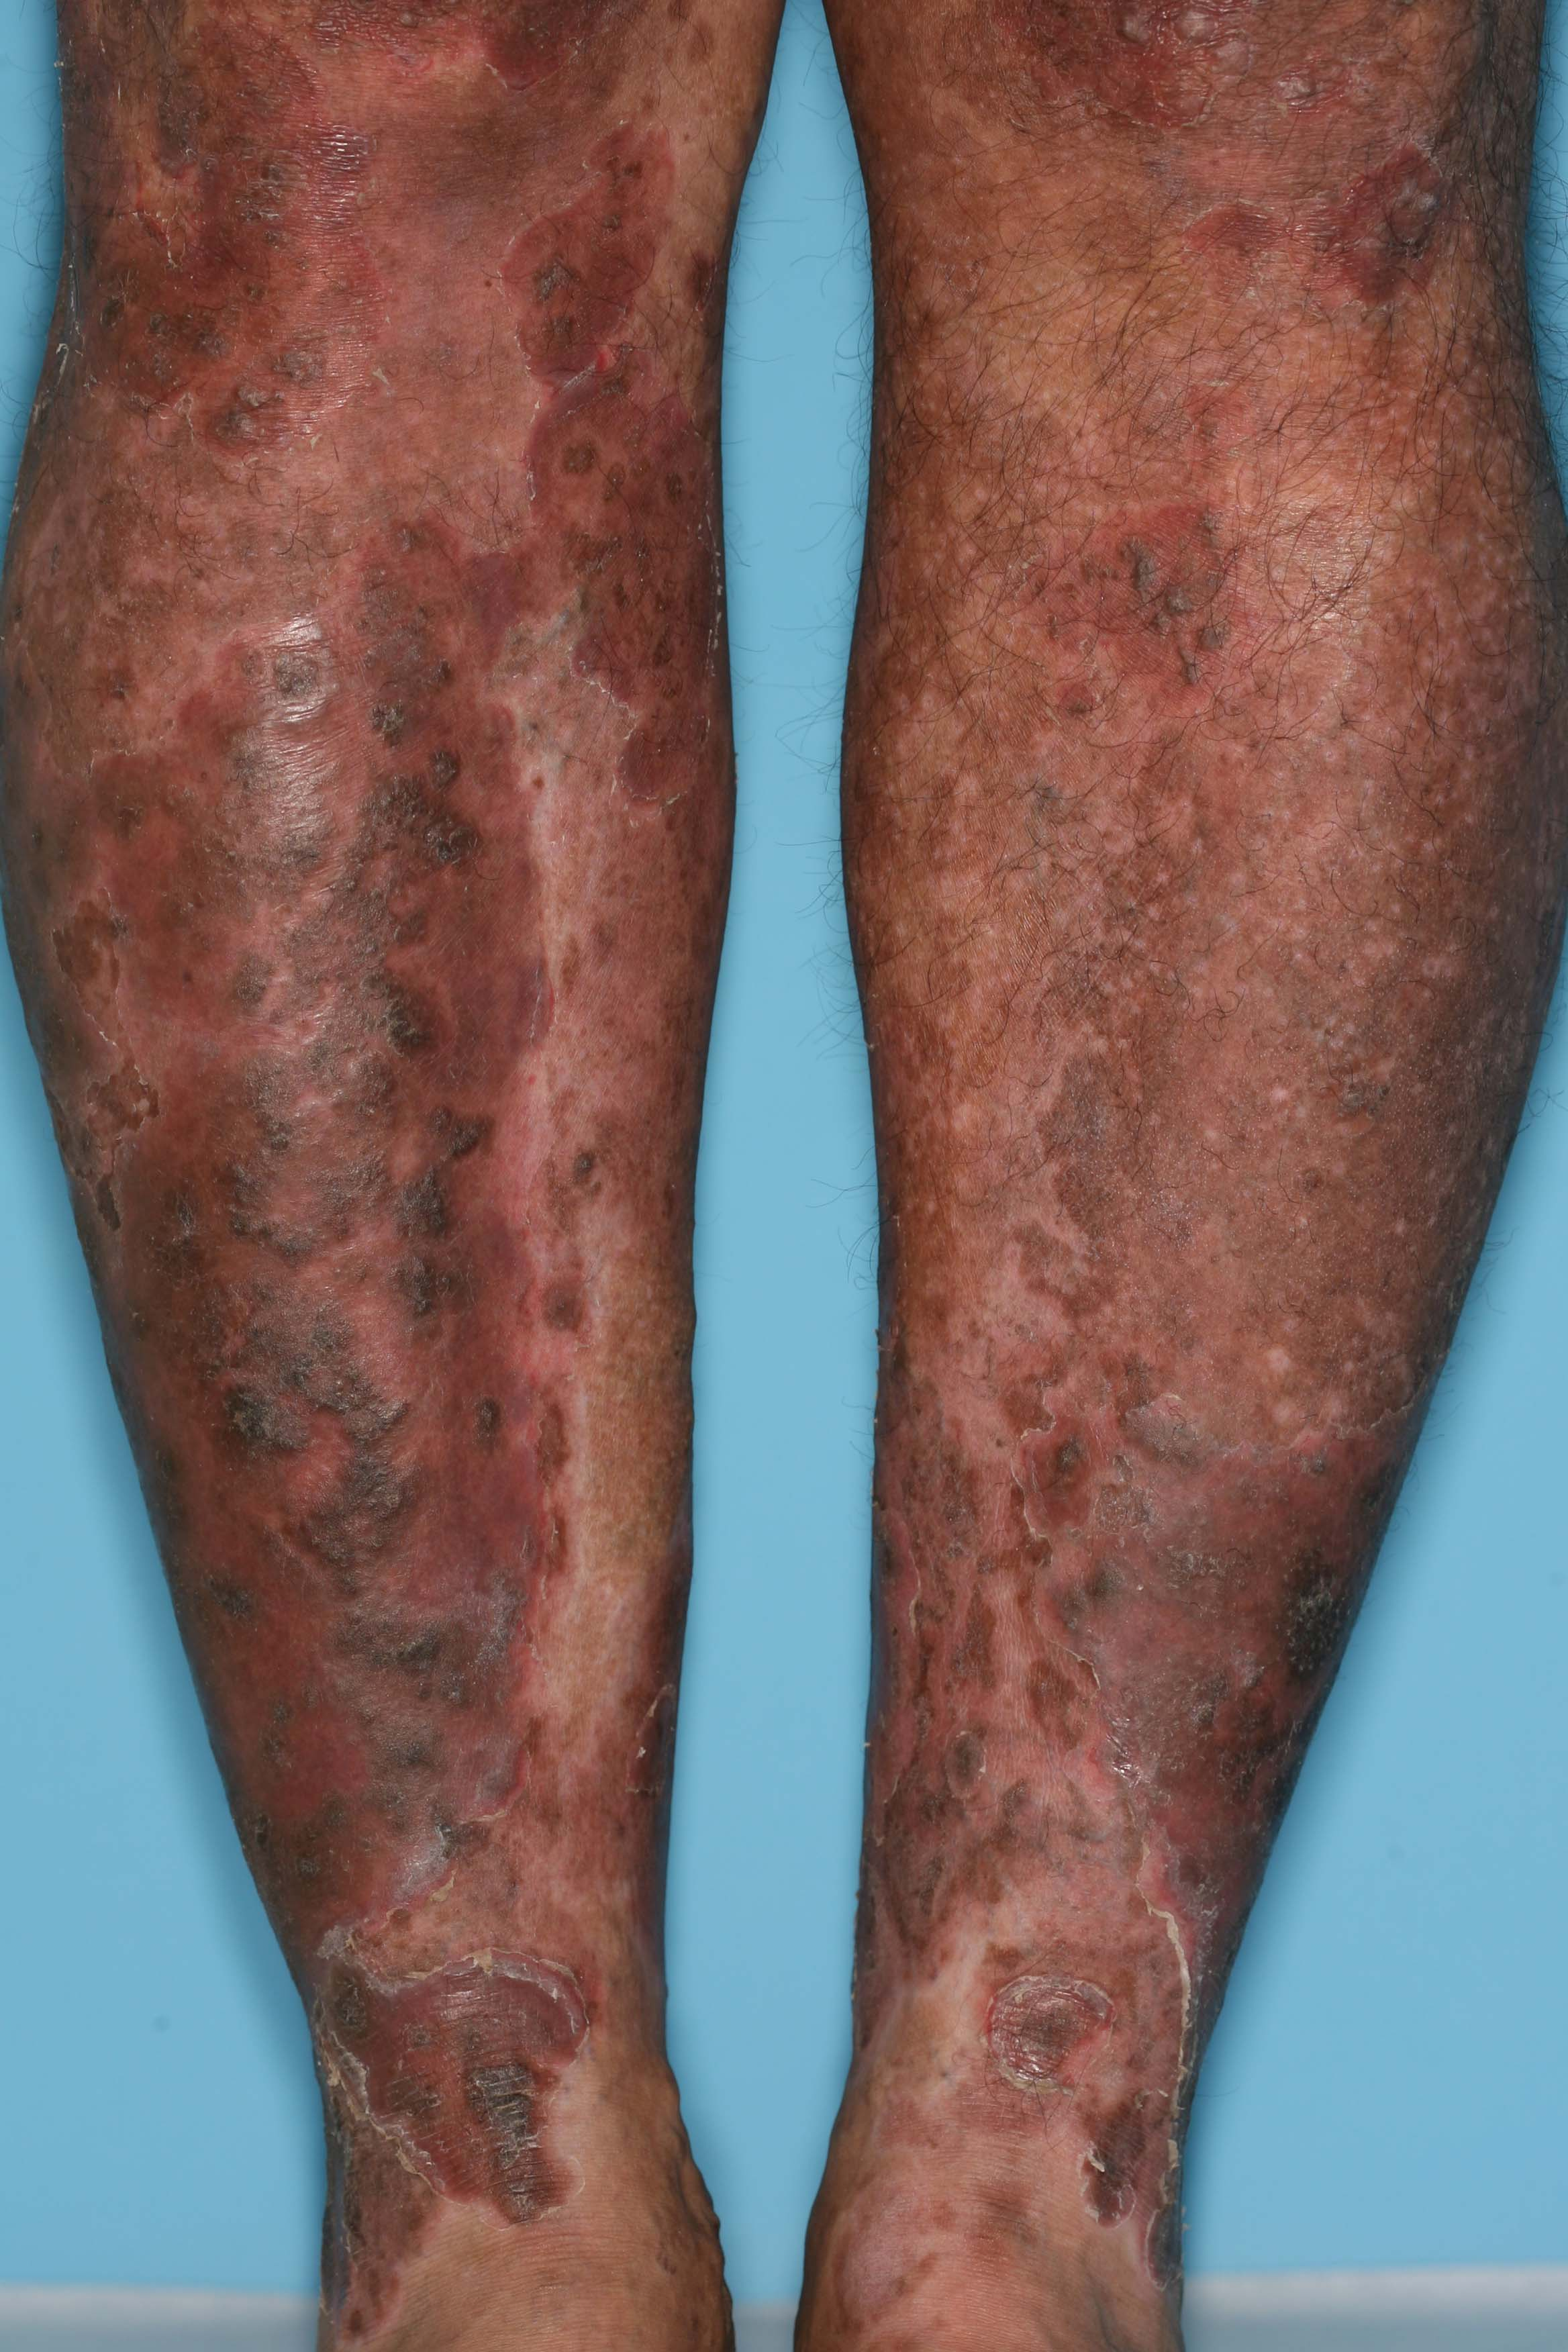 Pin Images-of-plaque-psoriasis-on-the-legs on Pinterest